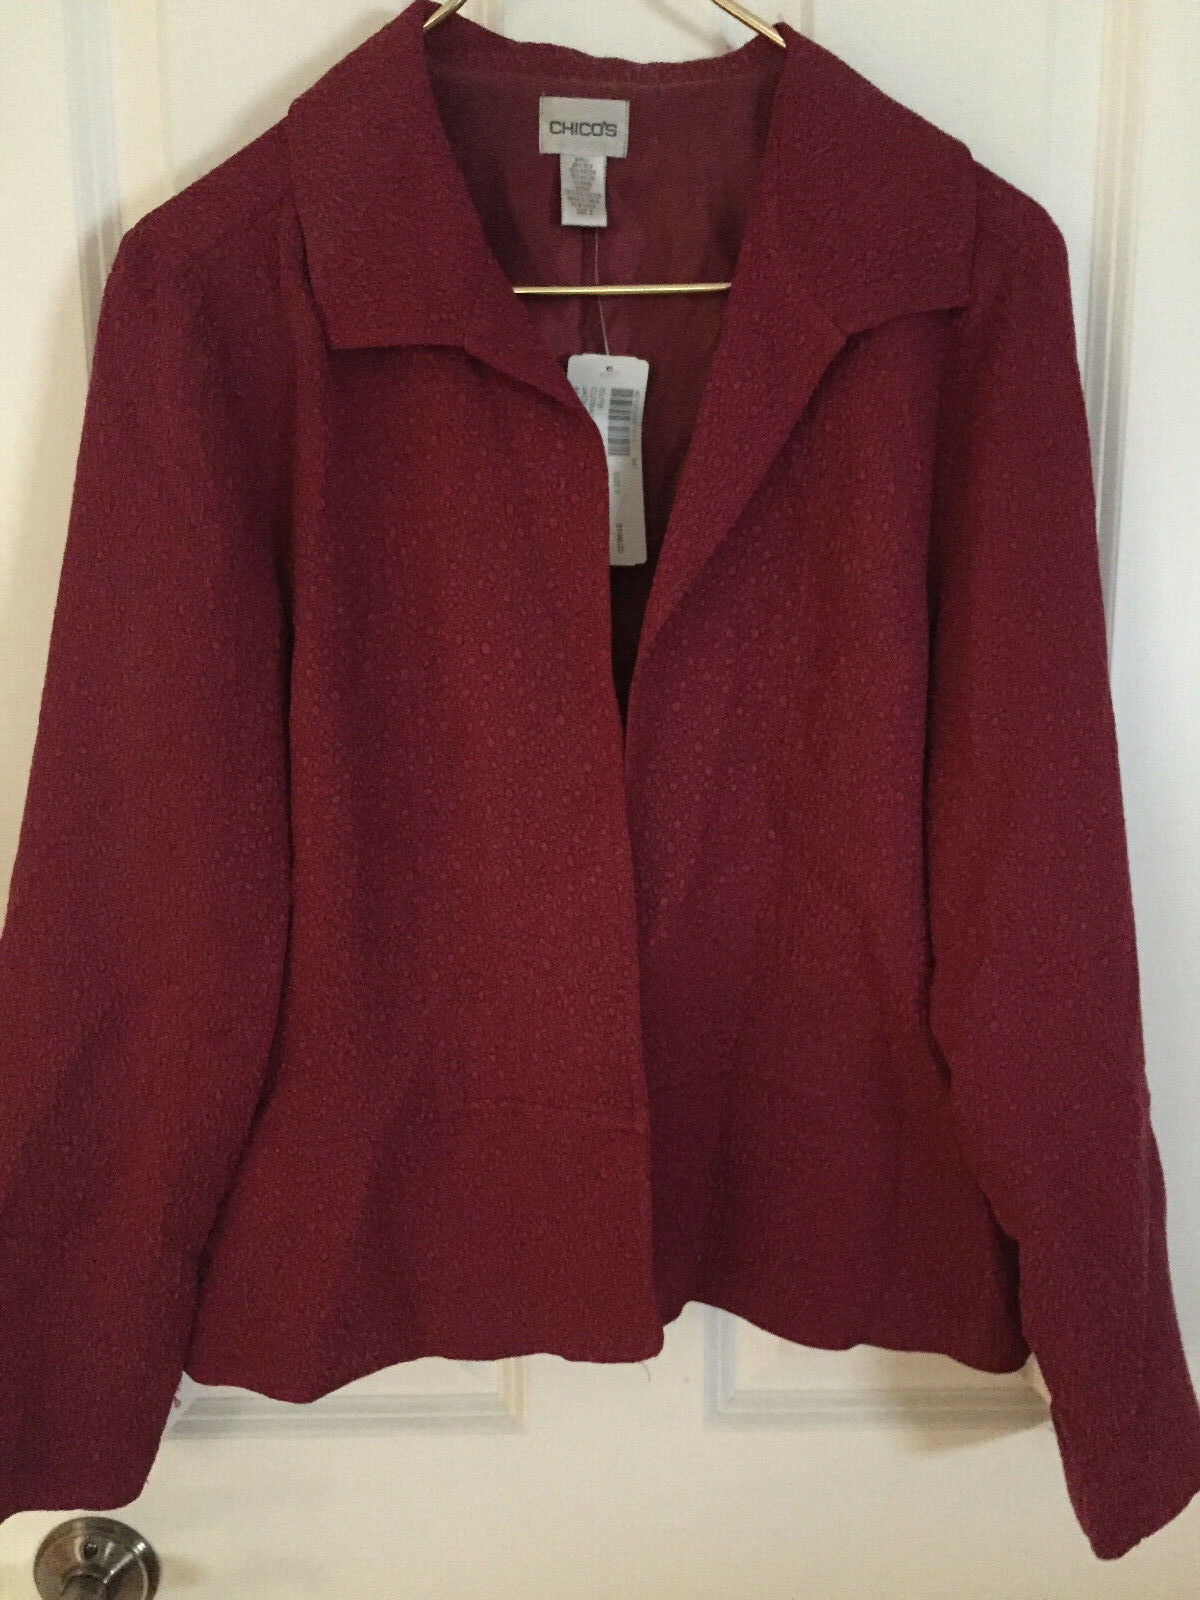 CHICO'S, WOMENS CLOTHING, SIZE 1, NEW WITH TAGS